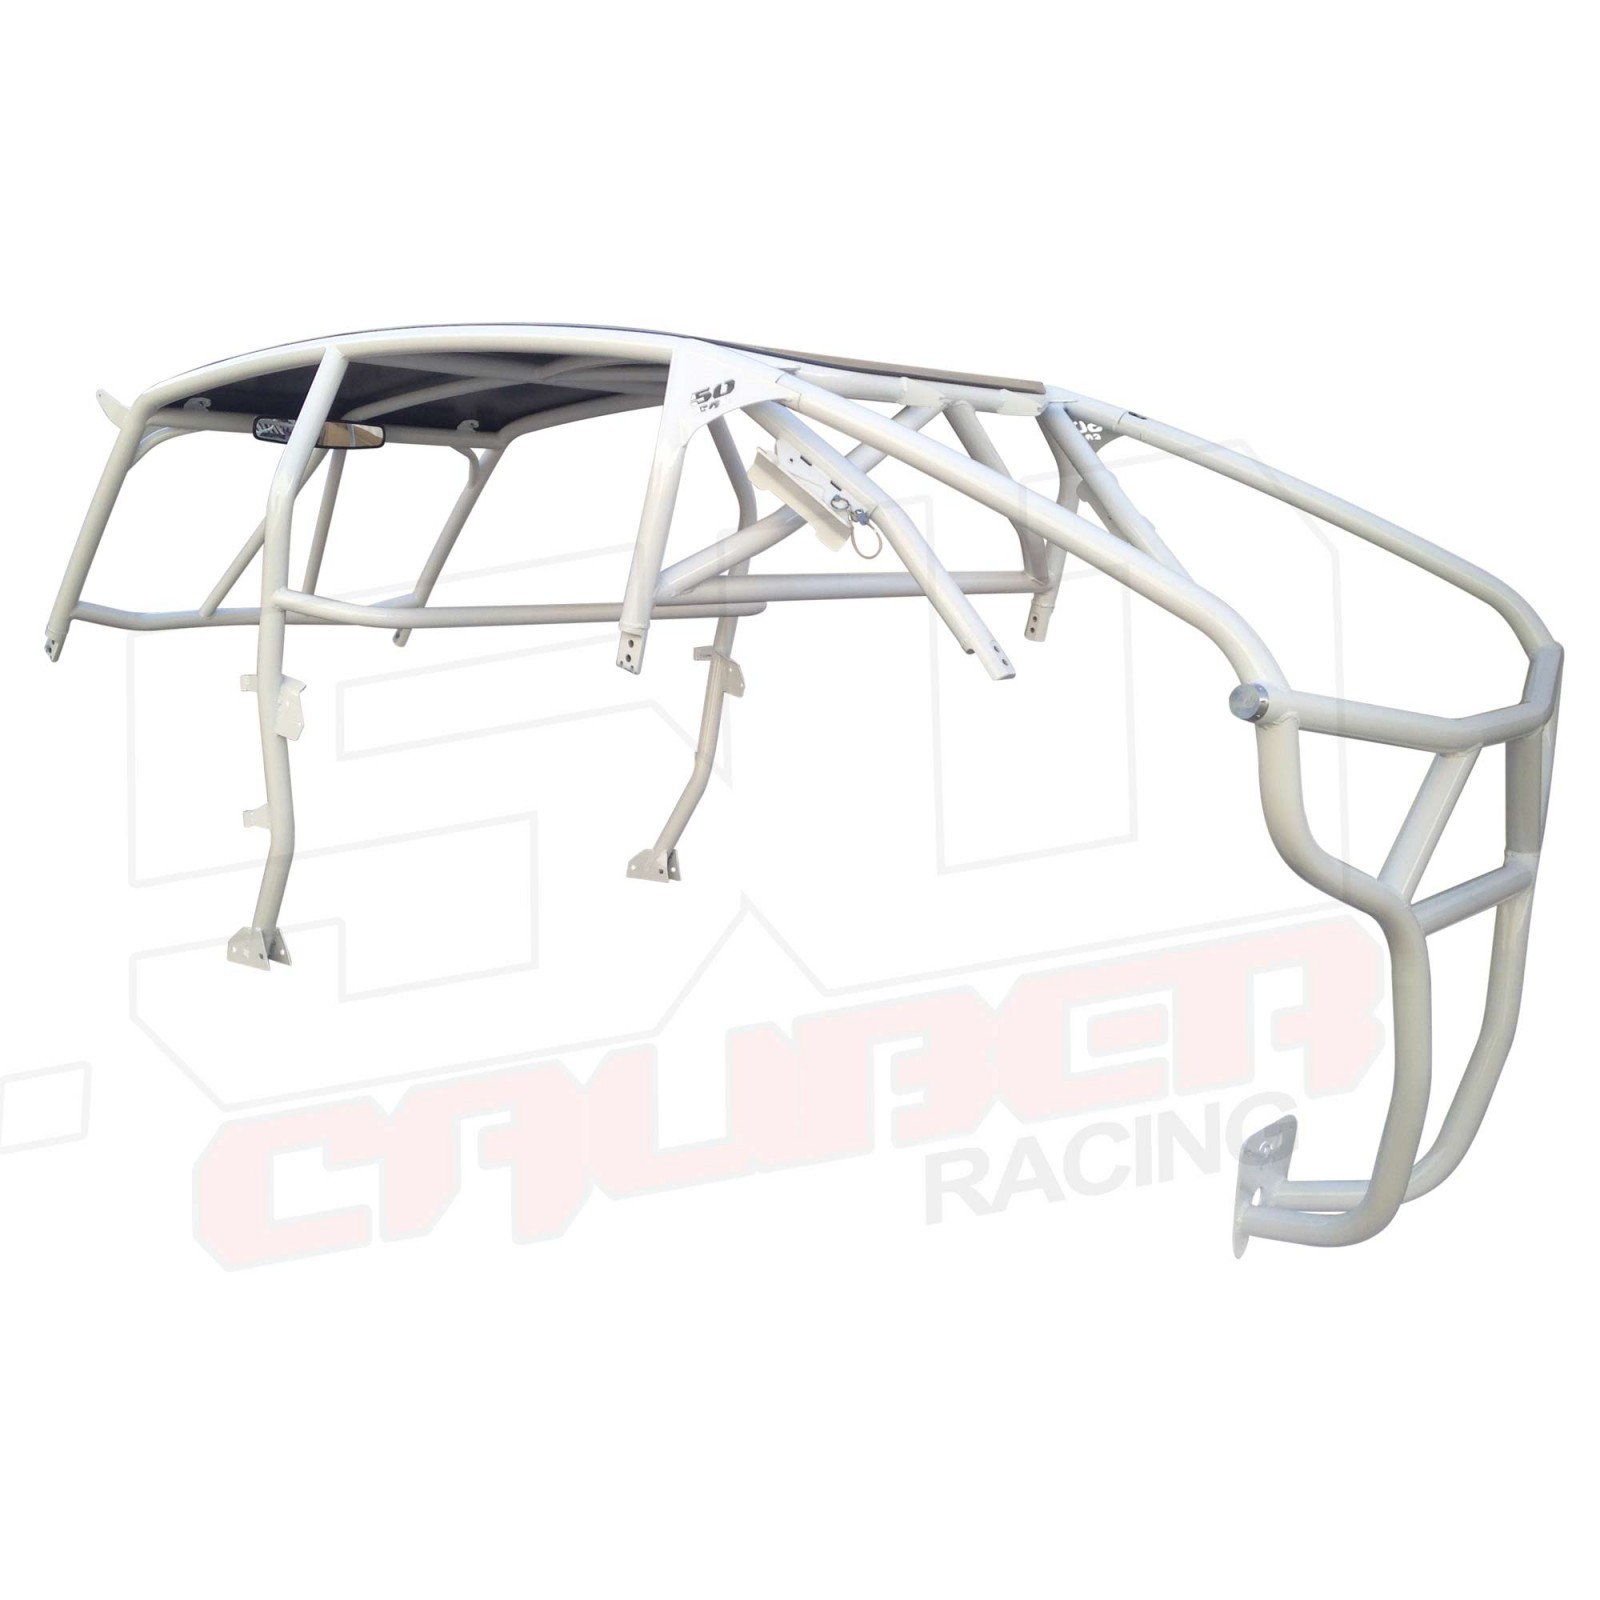 Polaris Rzr4 Xp Roll Cage With Radius Bends And